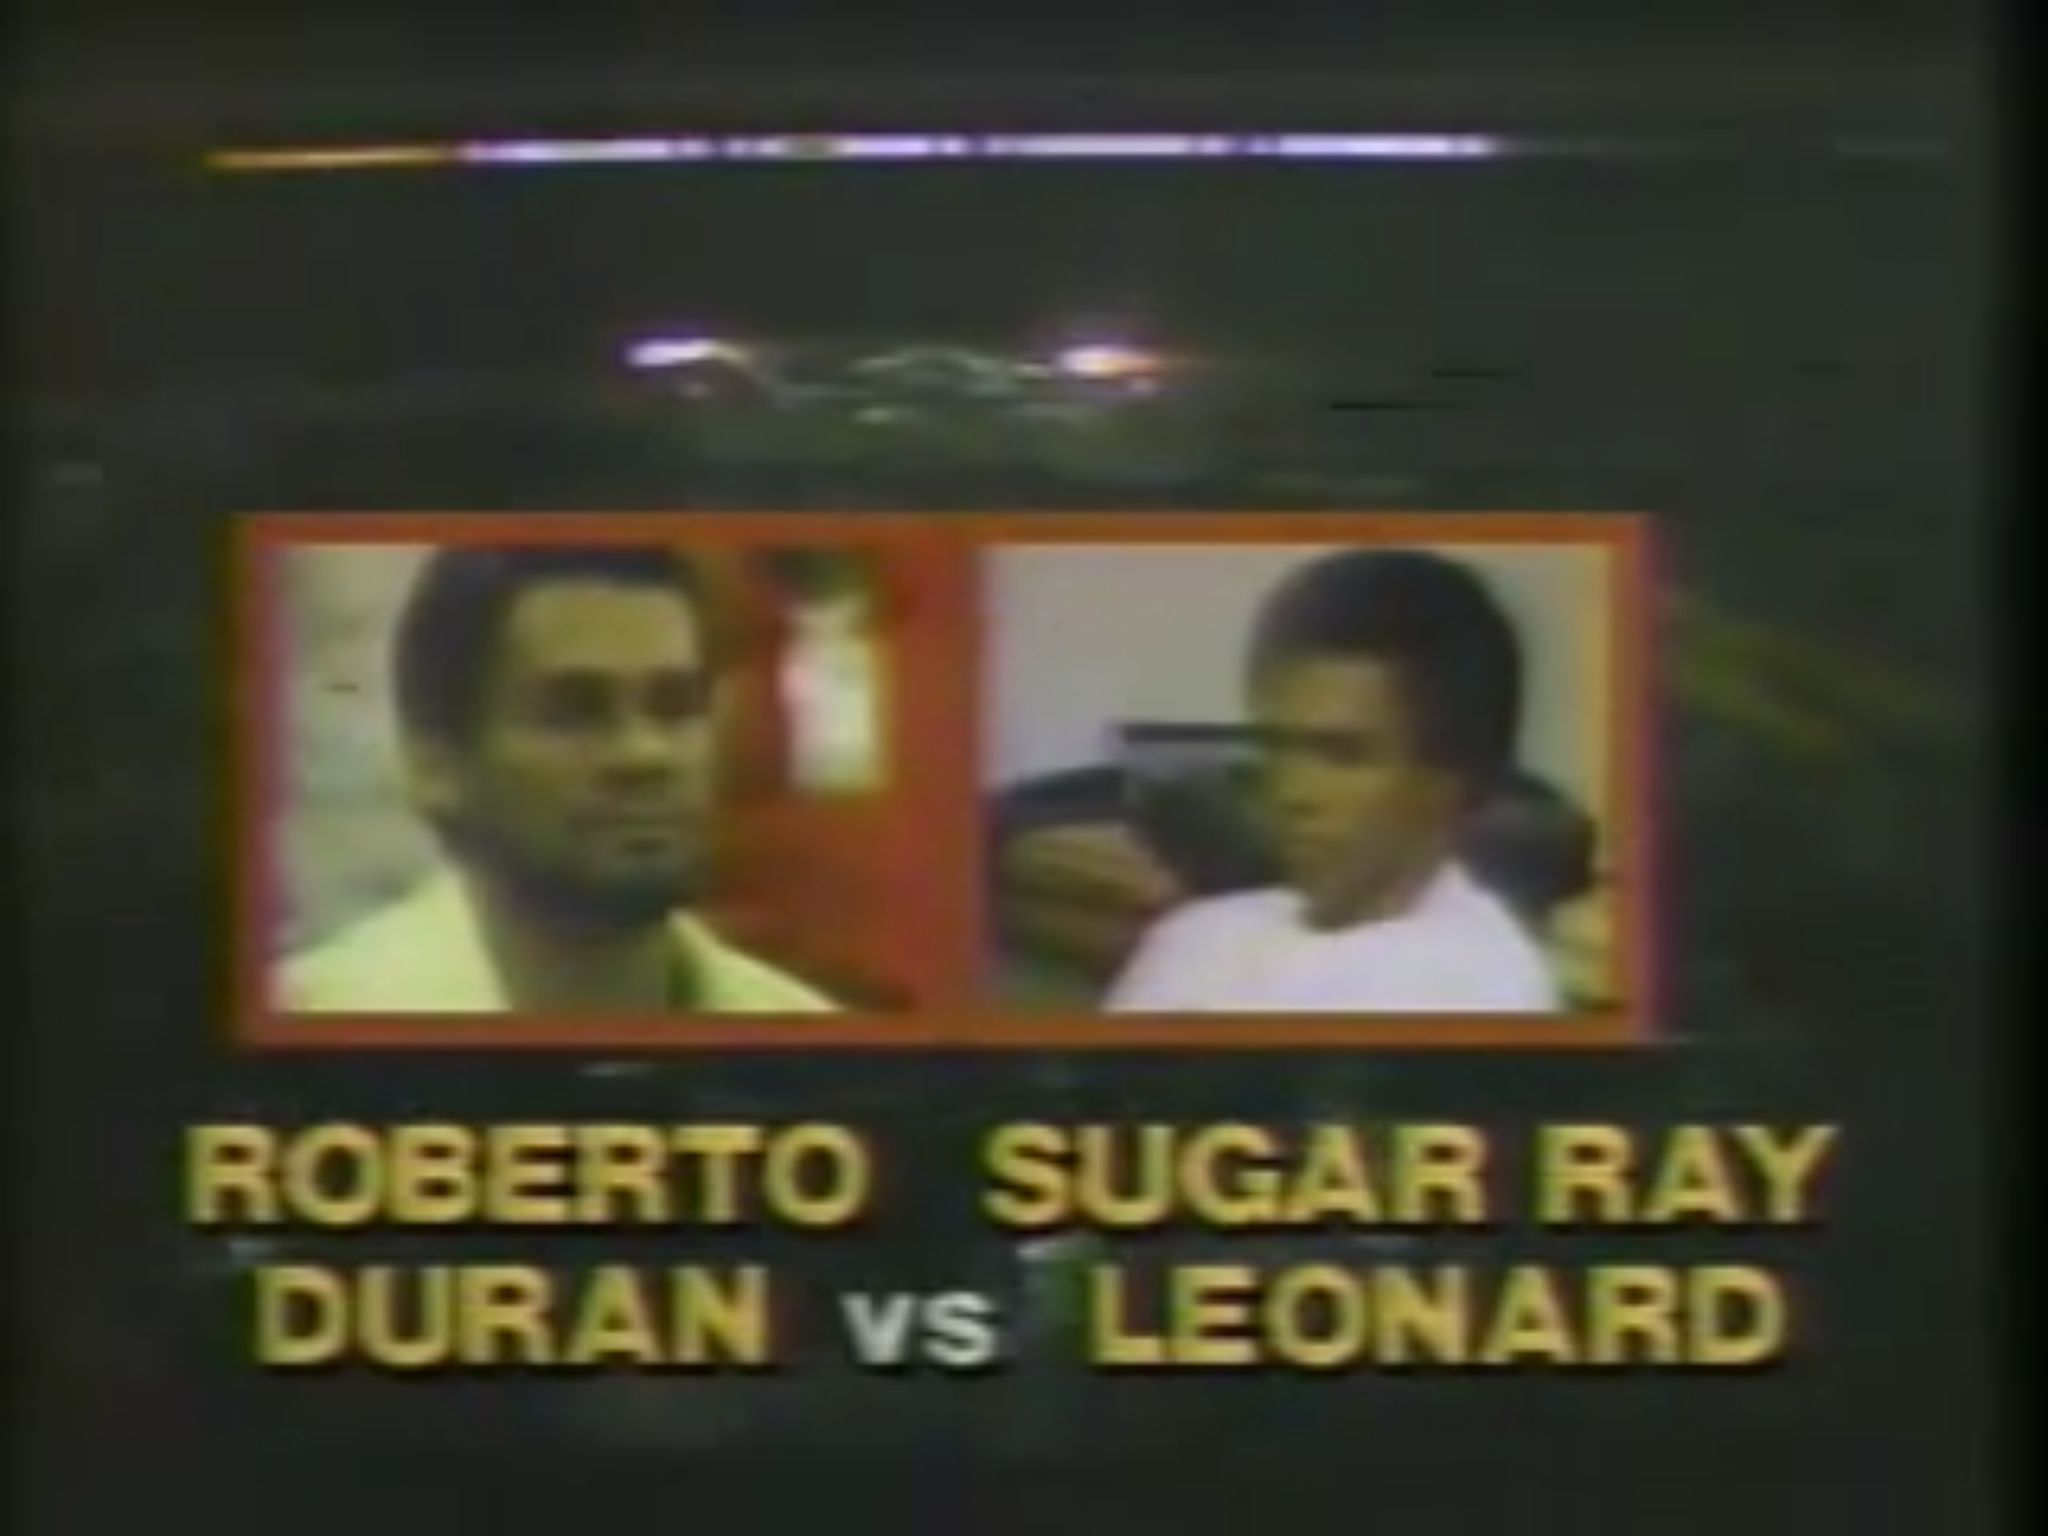 ABC Sports boxing coverage